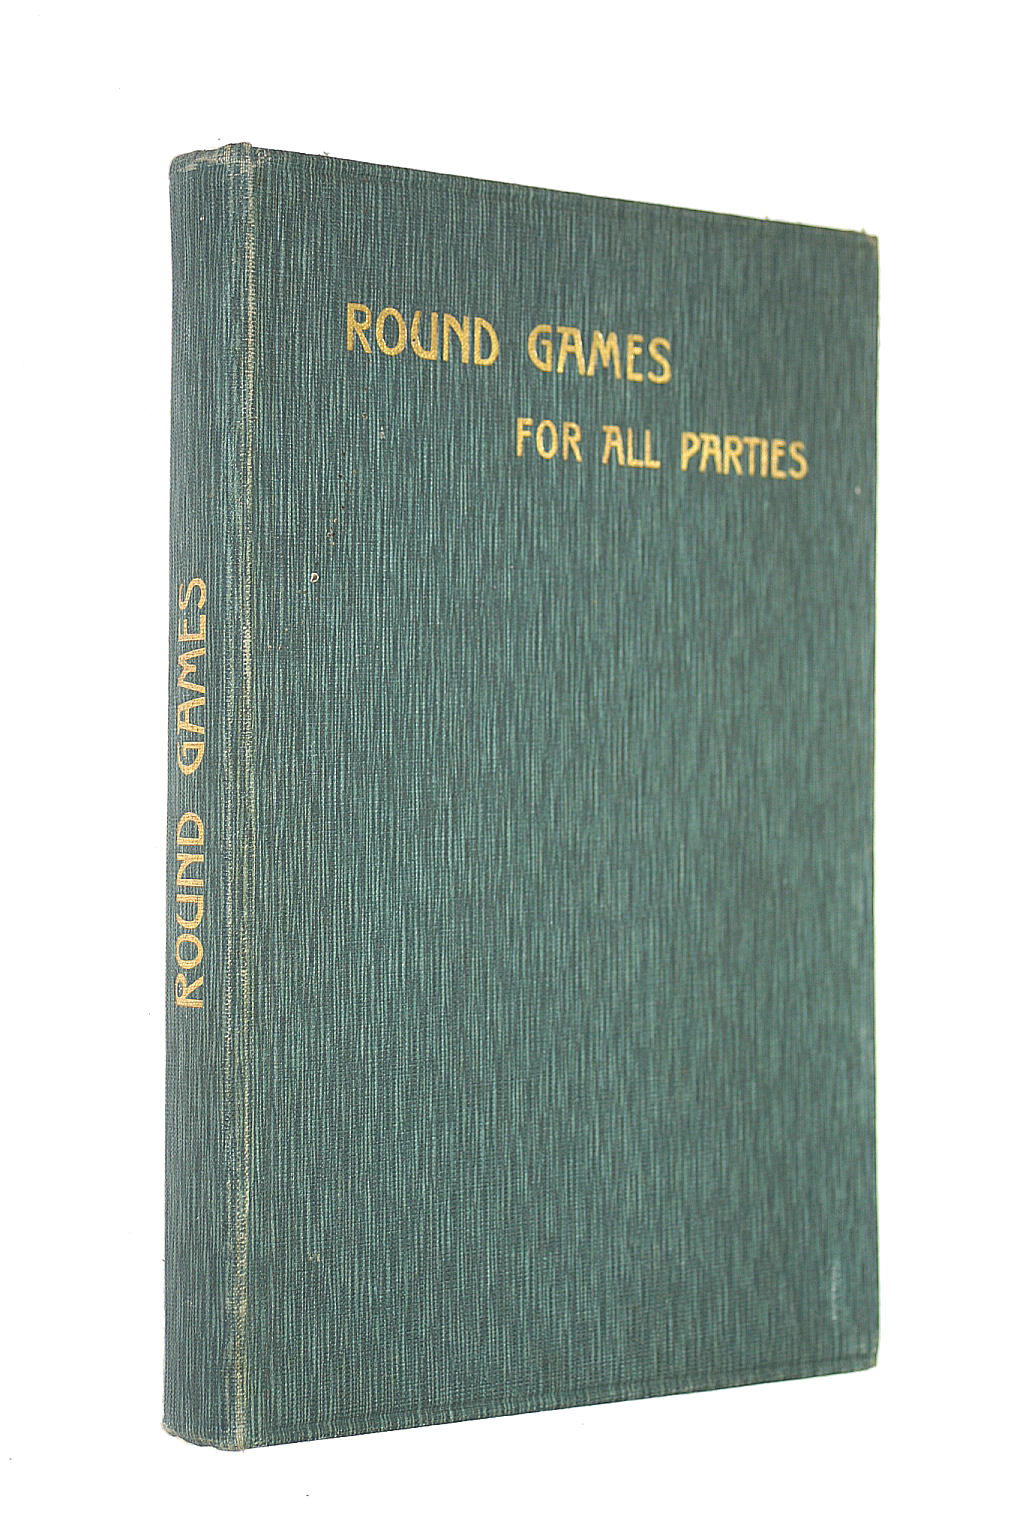 Image for Round Games for all Parties. A Collection of the Greatest Variety of Family Amusements for Fireside or Pic-nic.For the Use of Old and Young.